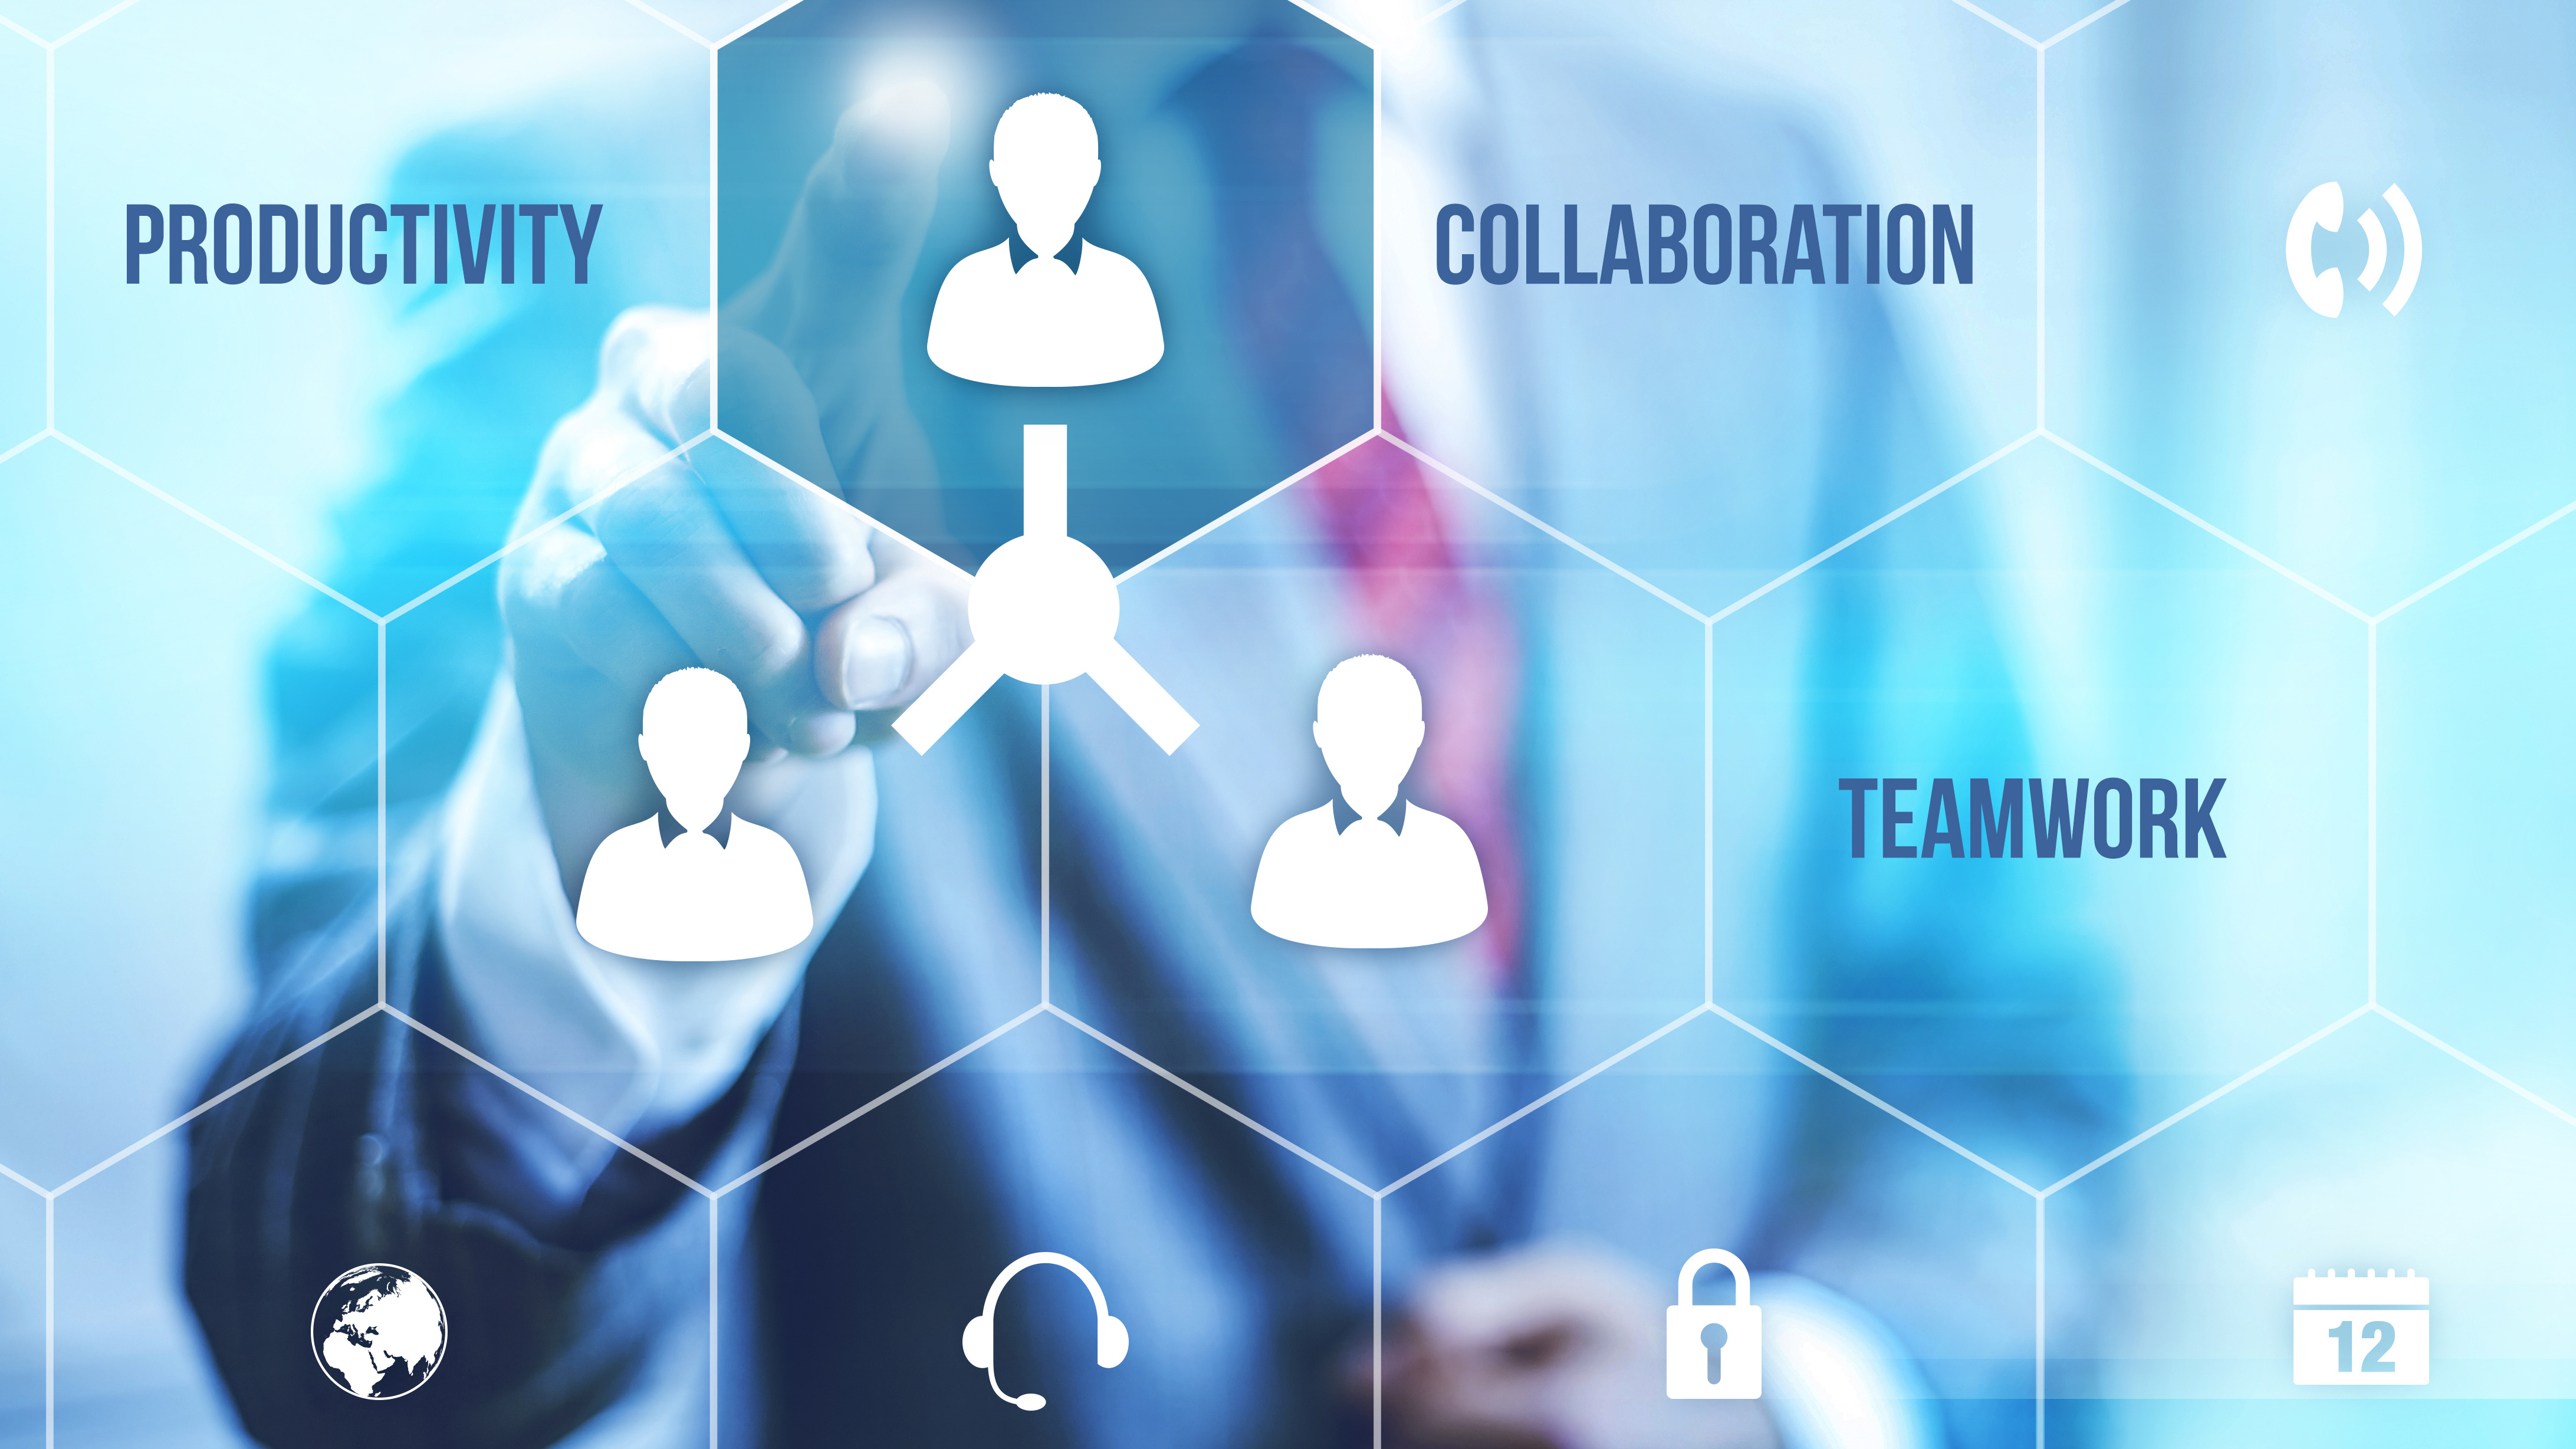 Microsoft Teams: collaboration, integrazione e sicurezza in un'unica piattaforma